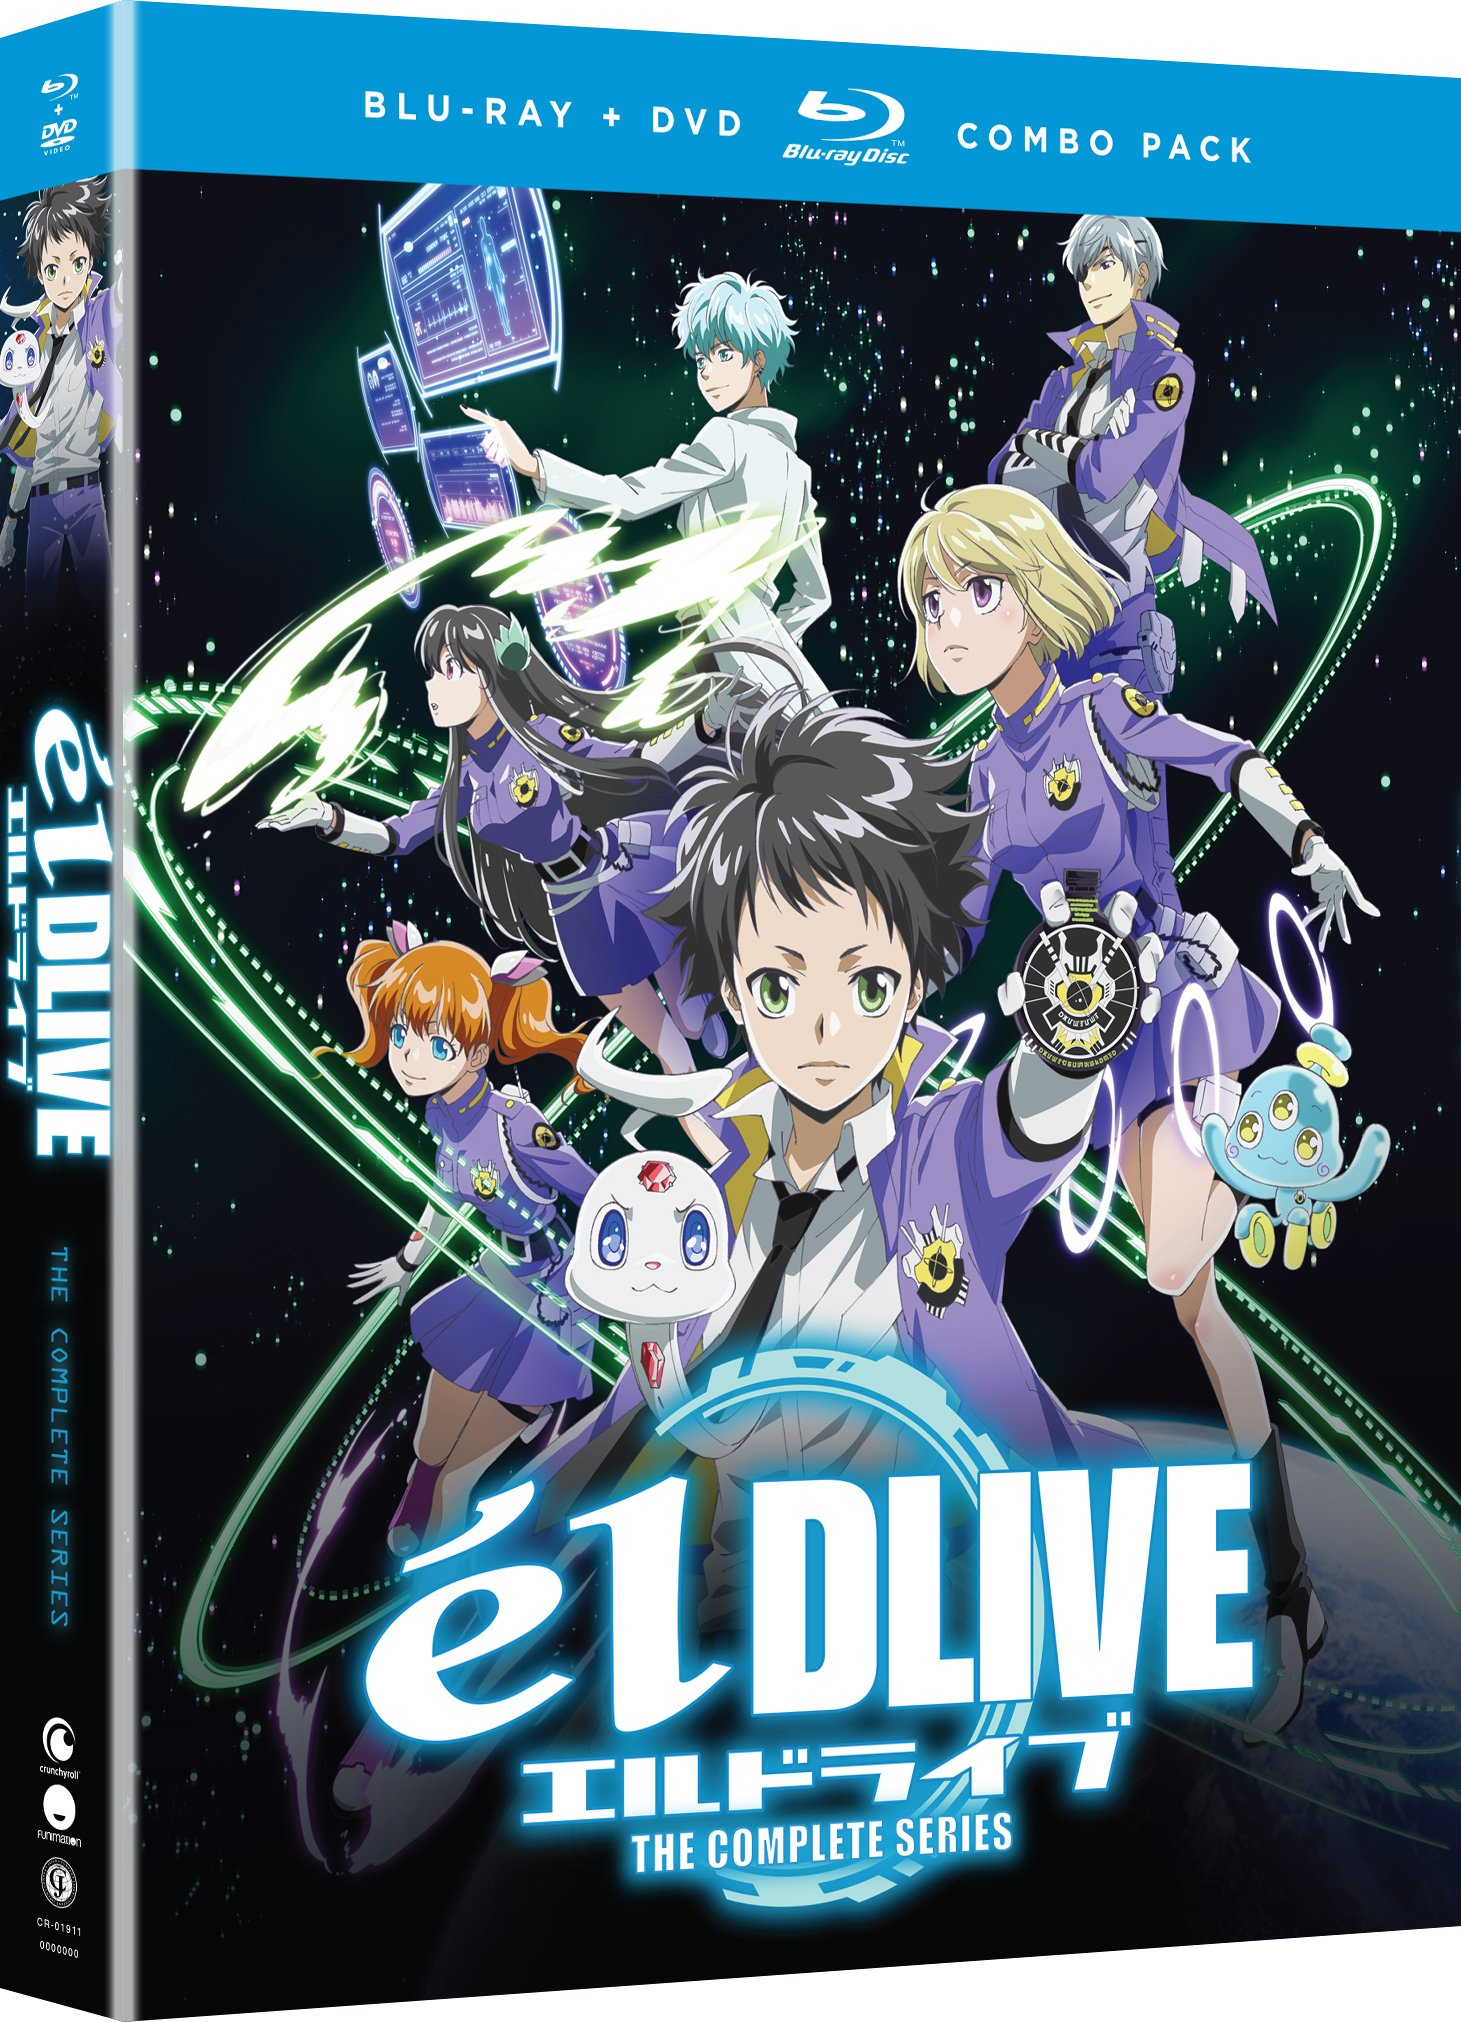 Blu-ray : Eldlive: The Complete Series (With DVD, Boxed Set, Dubbed, Subtitled, 4PC)